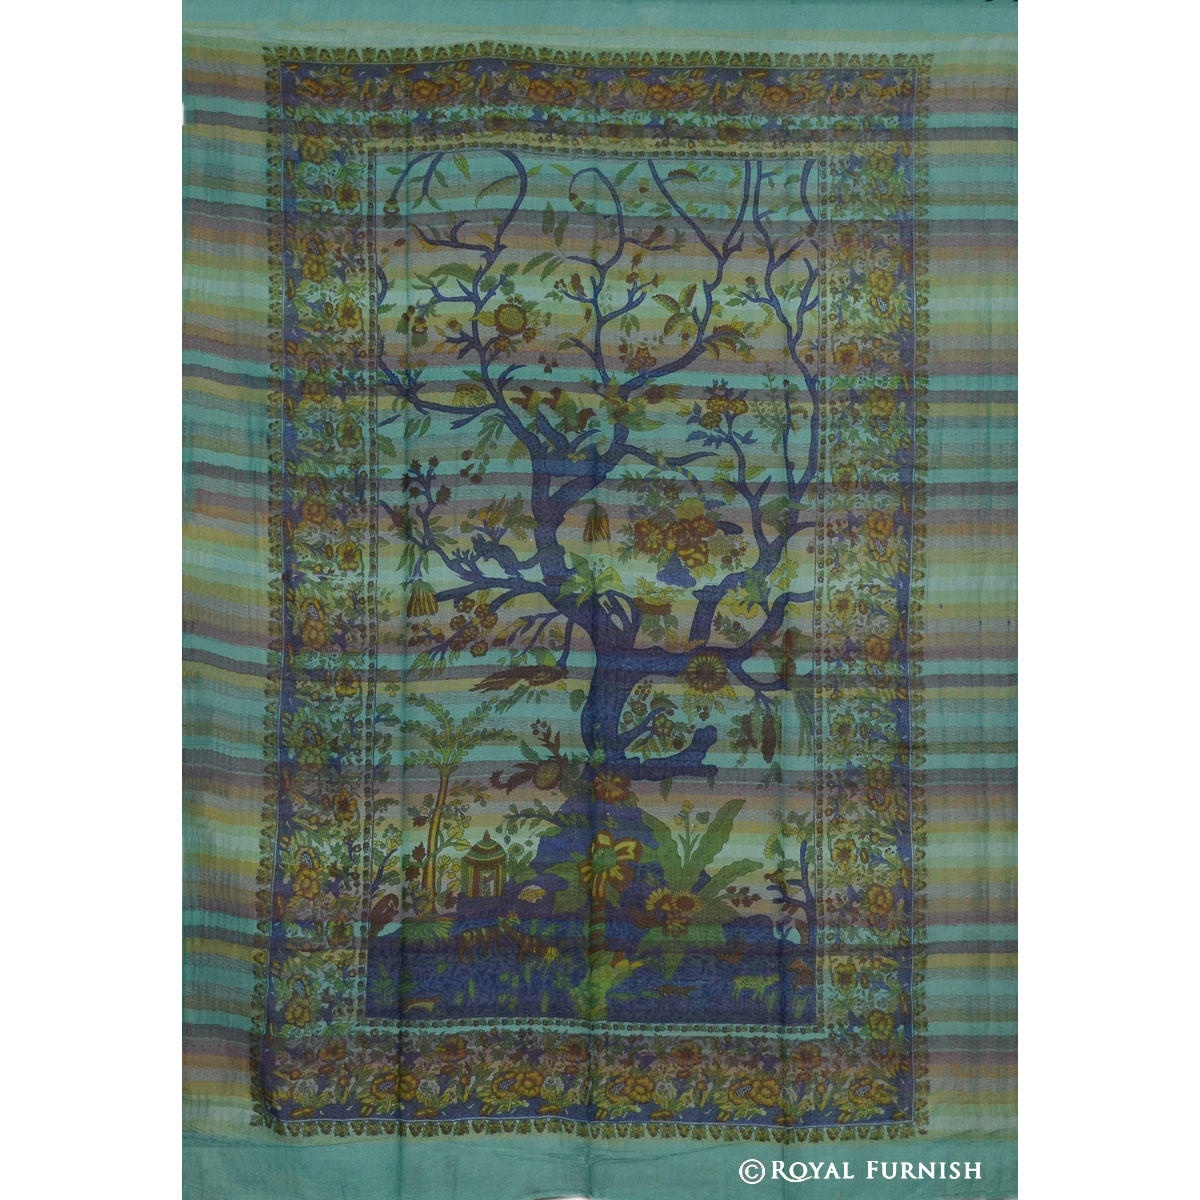 Green Tree Of Life Woven Hippie Tapestry Wall Hanging